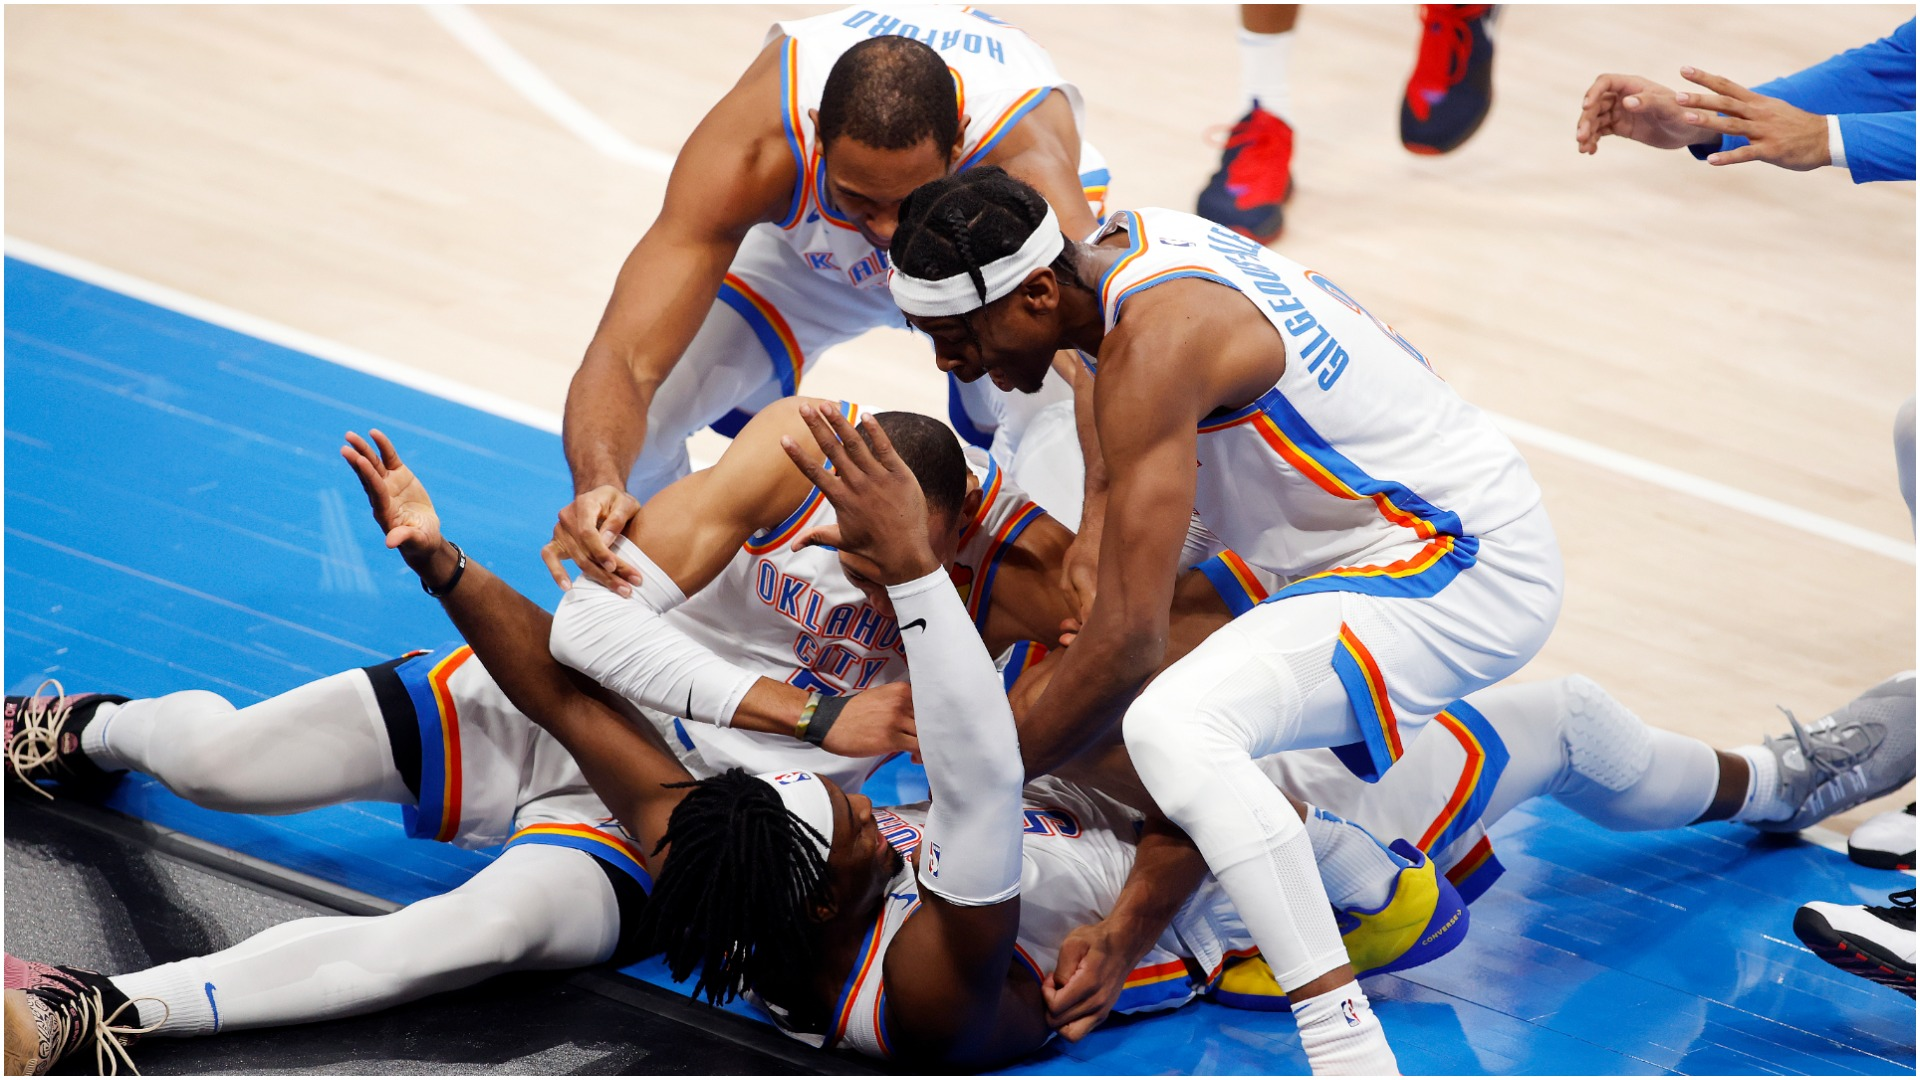 The Oklahoma City Thunder celebrated victory on Wednesday thanks to a three-pointer at the buzzer by Luguentz Dort.